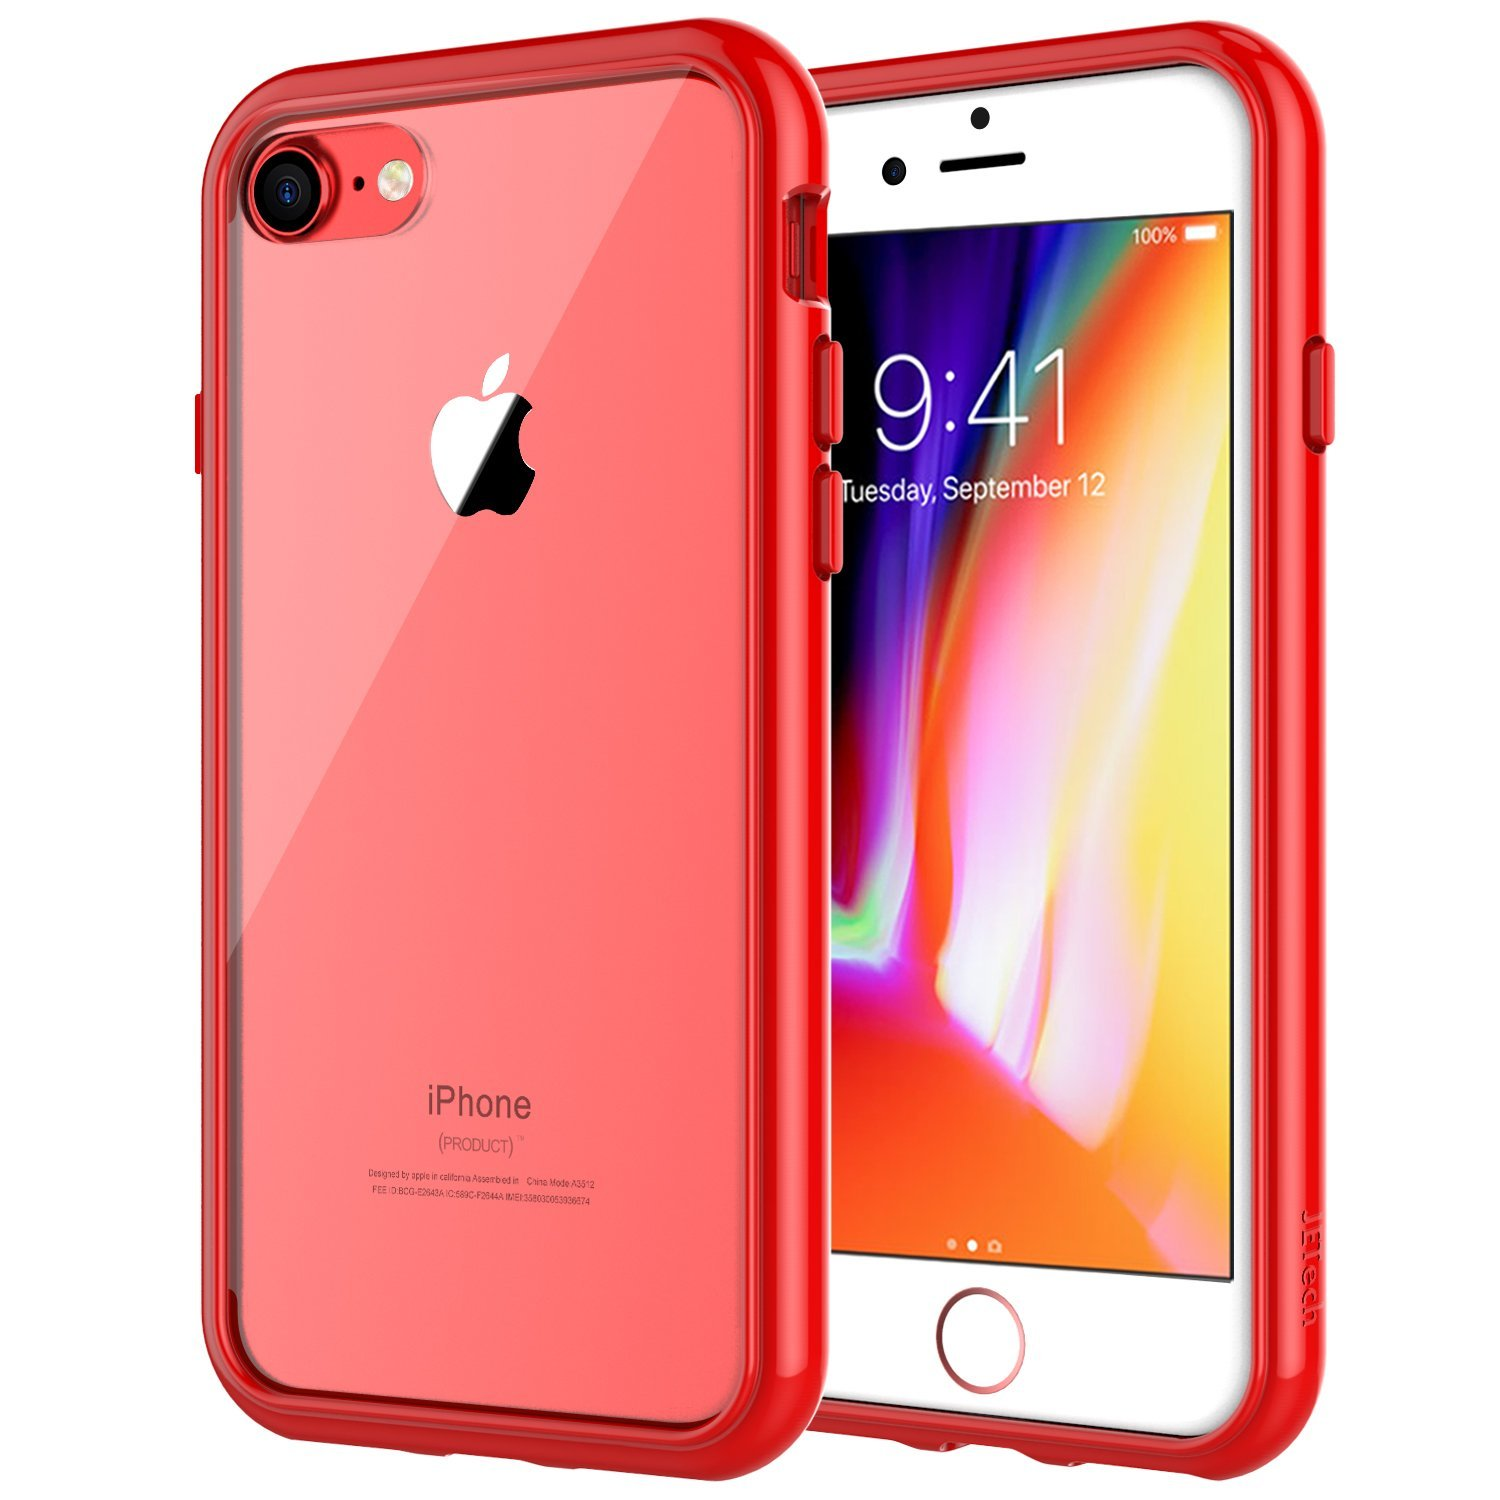 JETech Case for iPhone 8 and iPhone 7, Shock-Absorption Bumper Cover, Anti-Scratch Clear Back, HD Clear 3421A